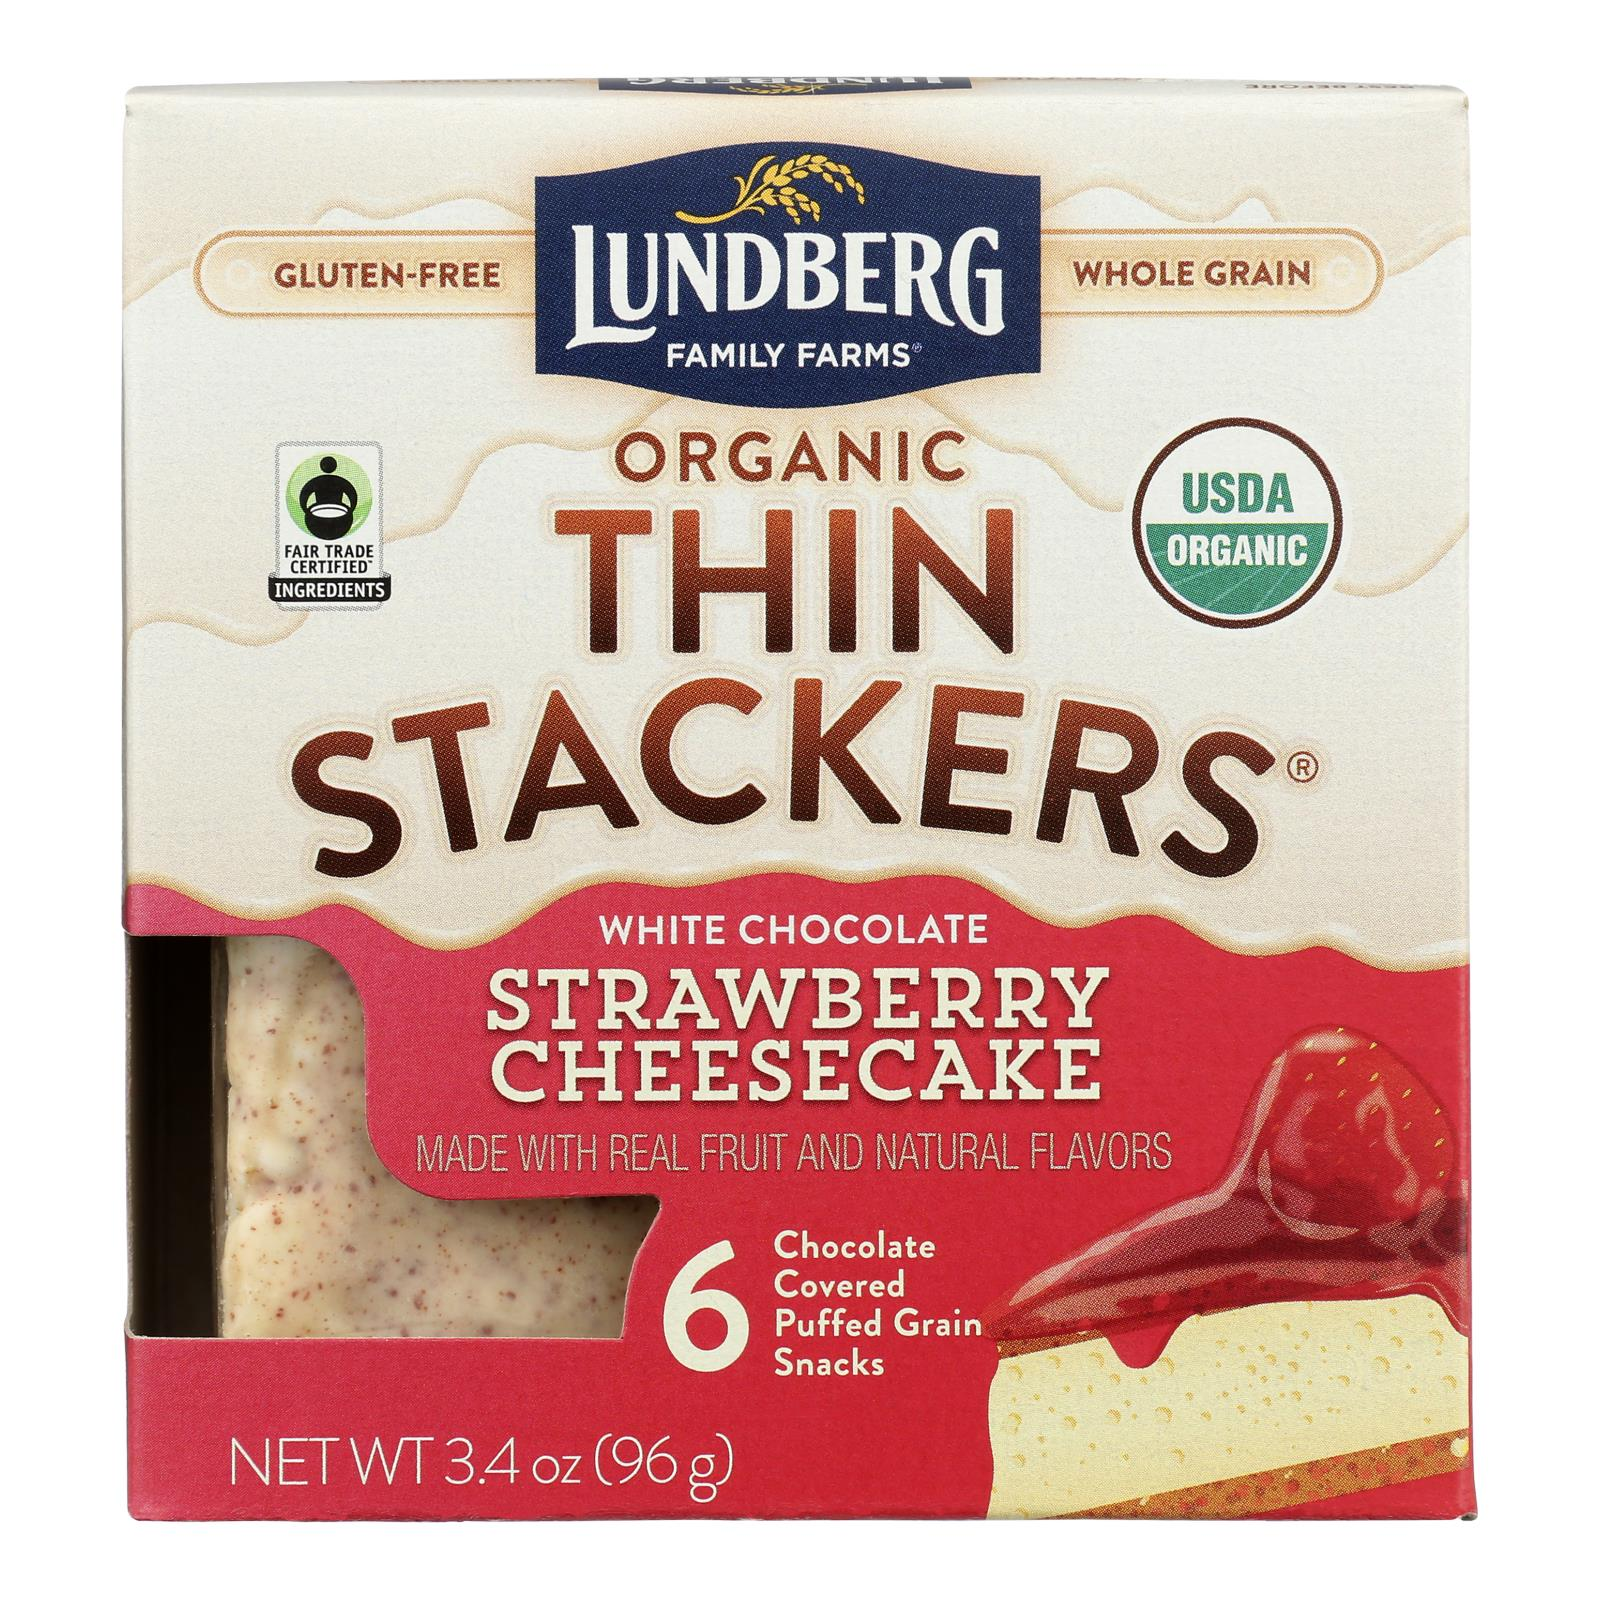 Lundberg Family Farms - Stackers White Chocolate Stw - Case of 6 - 3.4 OZ